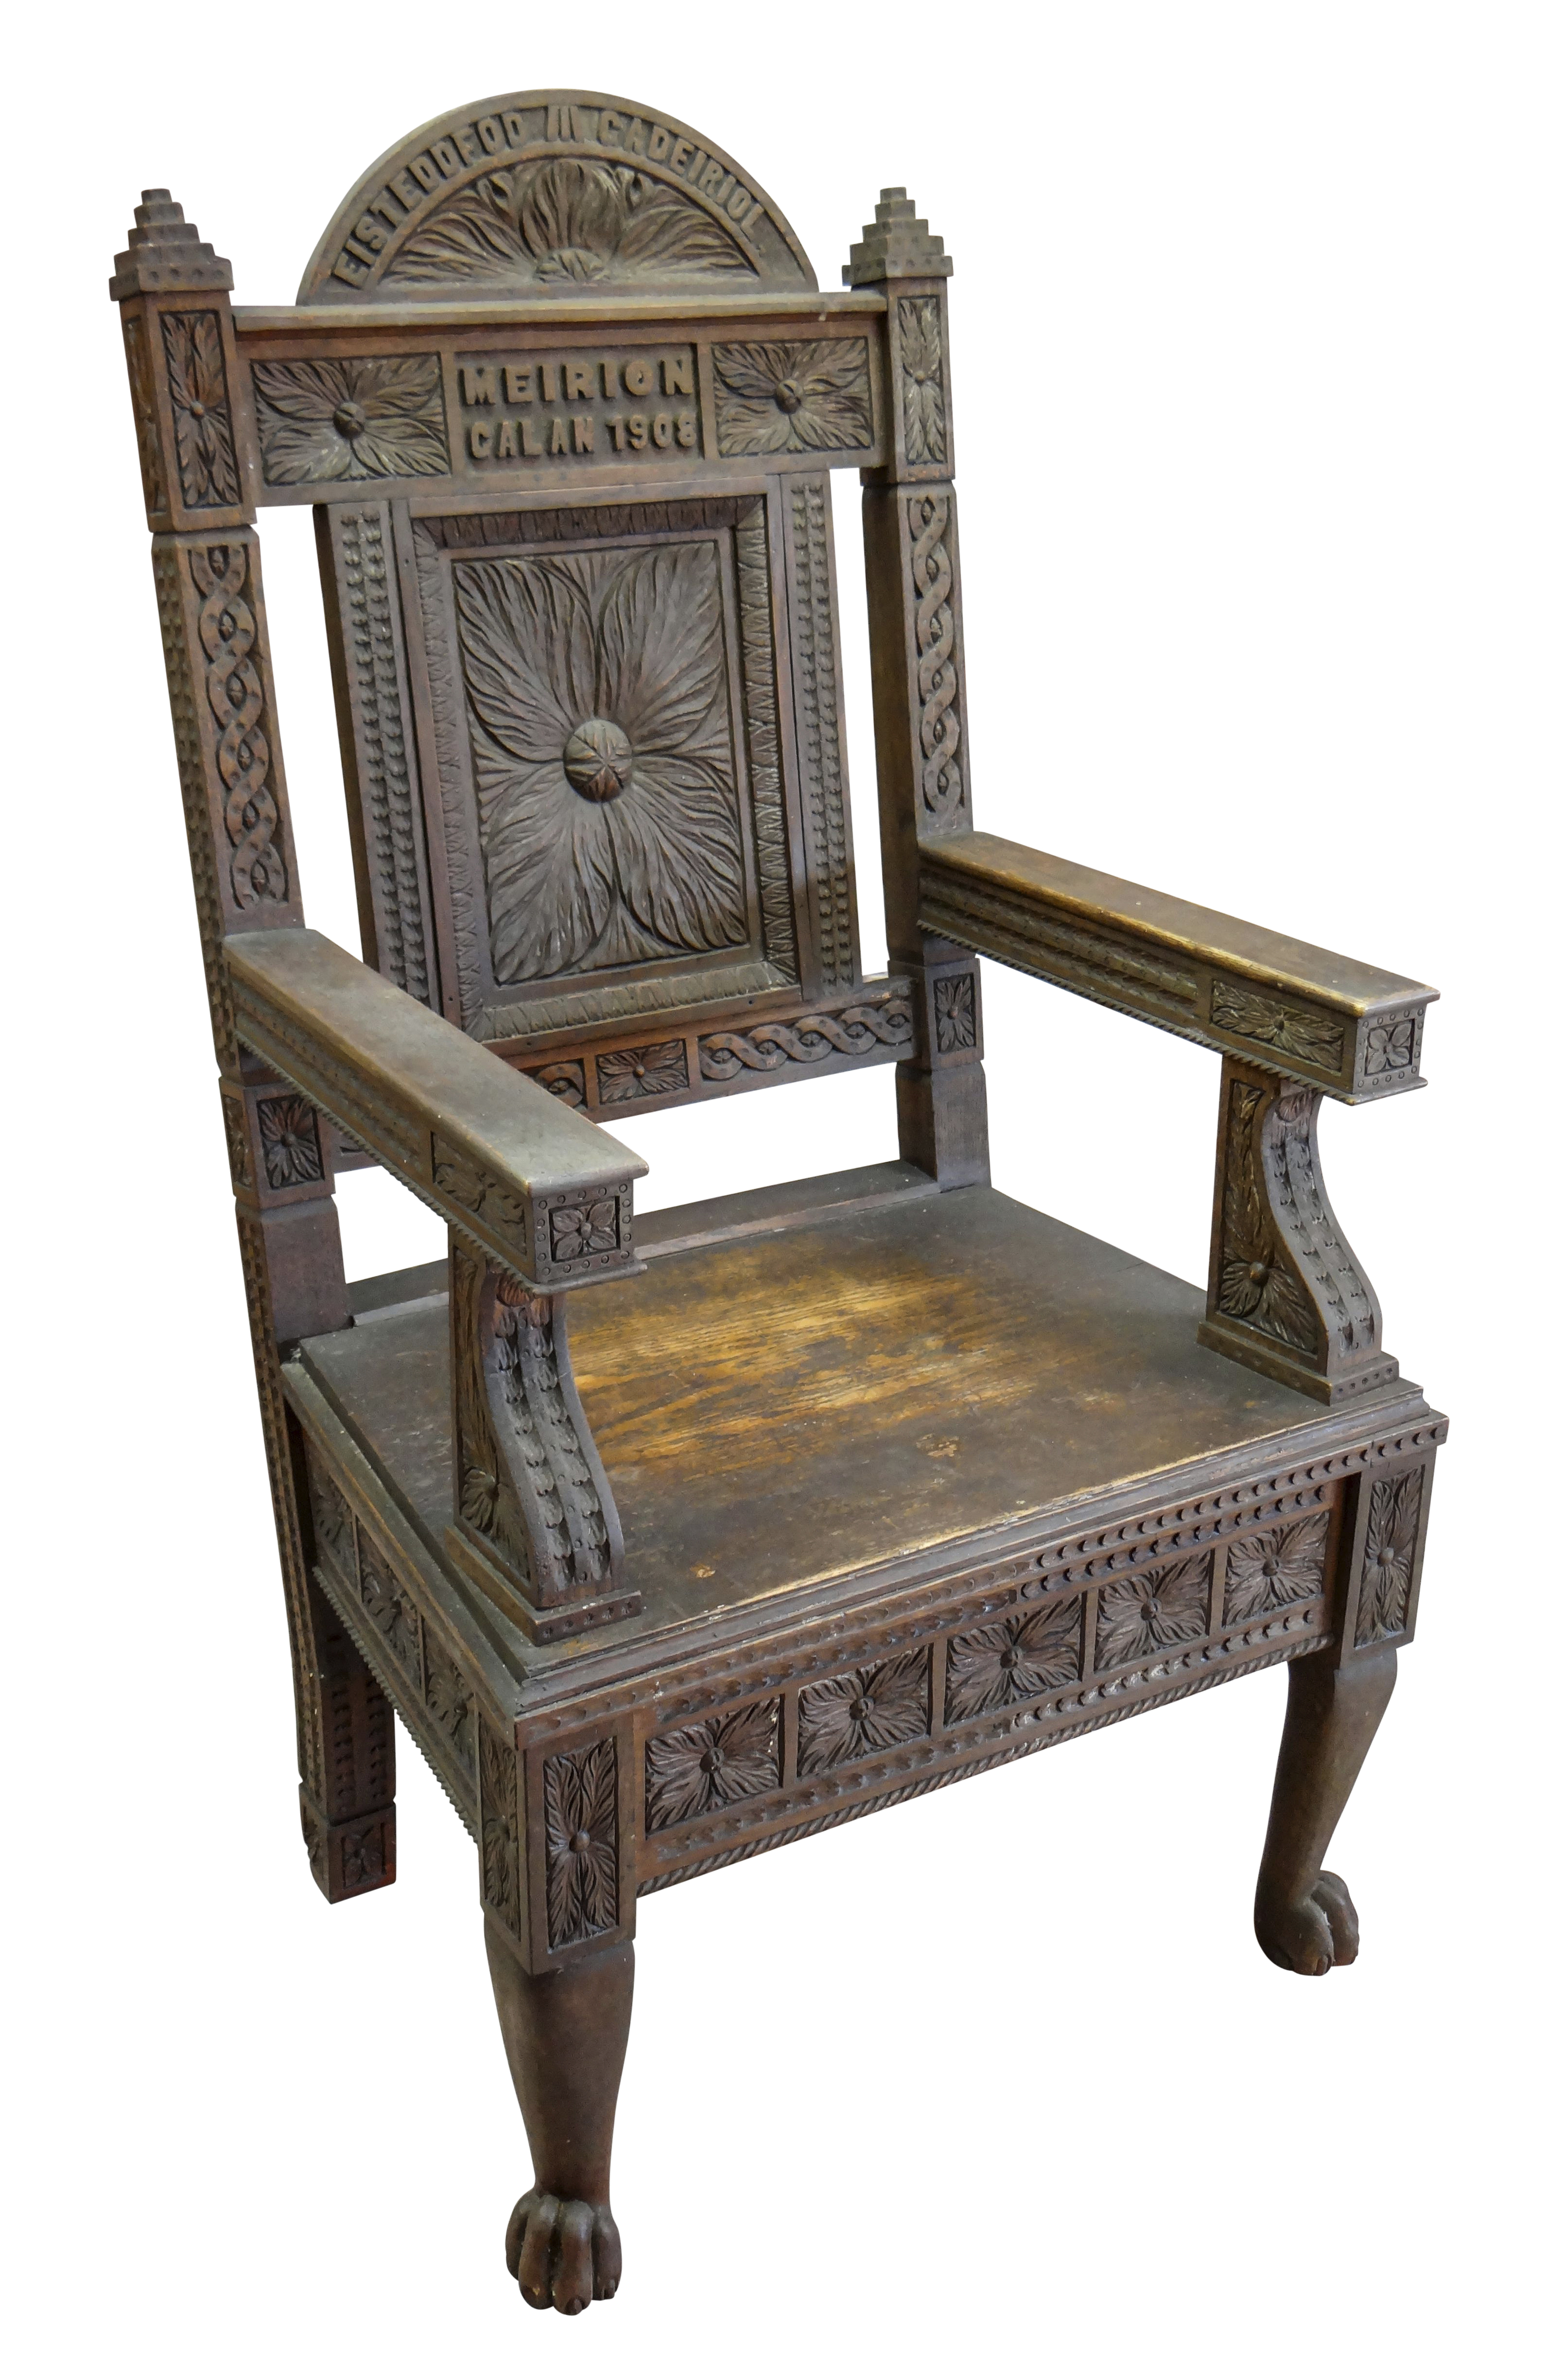 A 1908 EISTEDDFOD BARDIC CHAIR AWARDED TO REVEREND WILLIAM ALFA RICHARDS (1875-1931) in carved